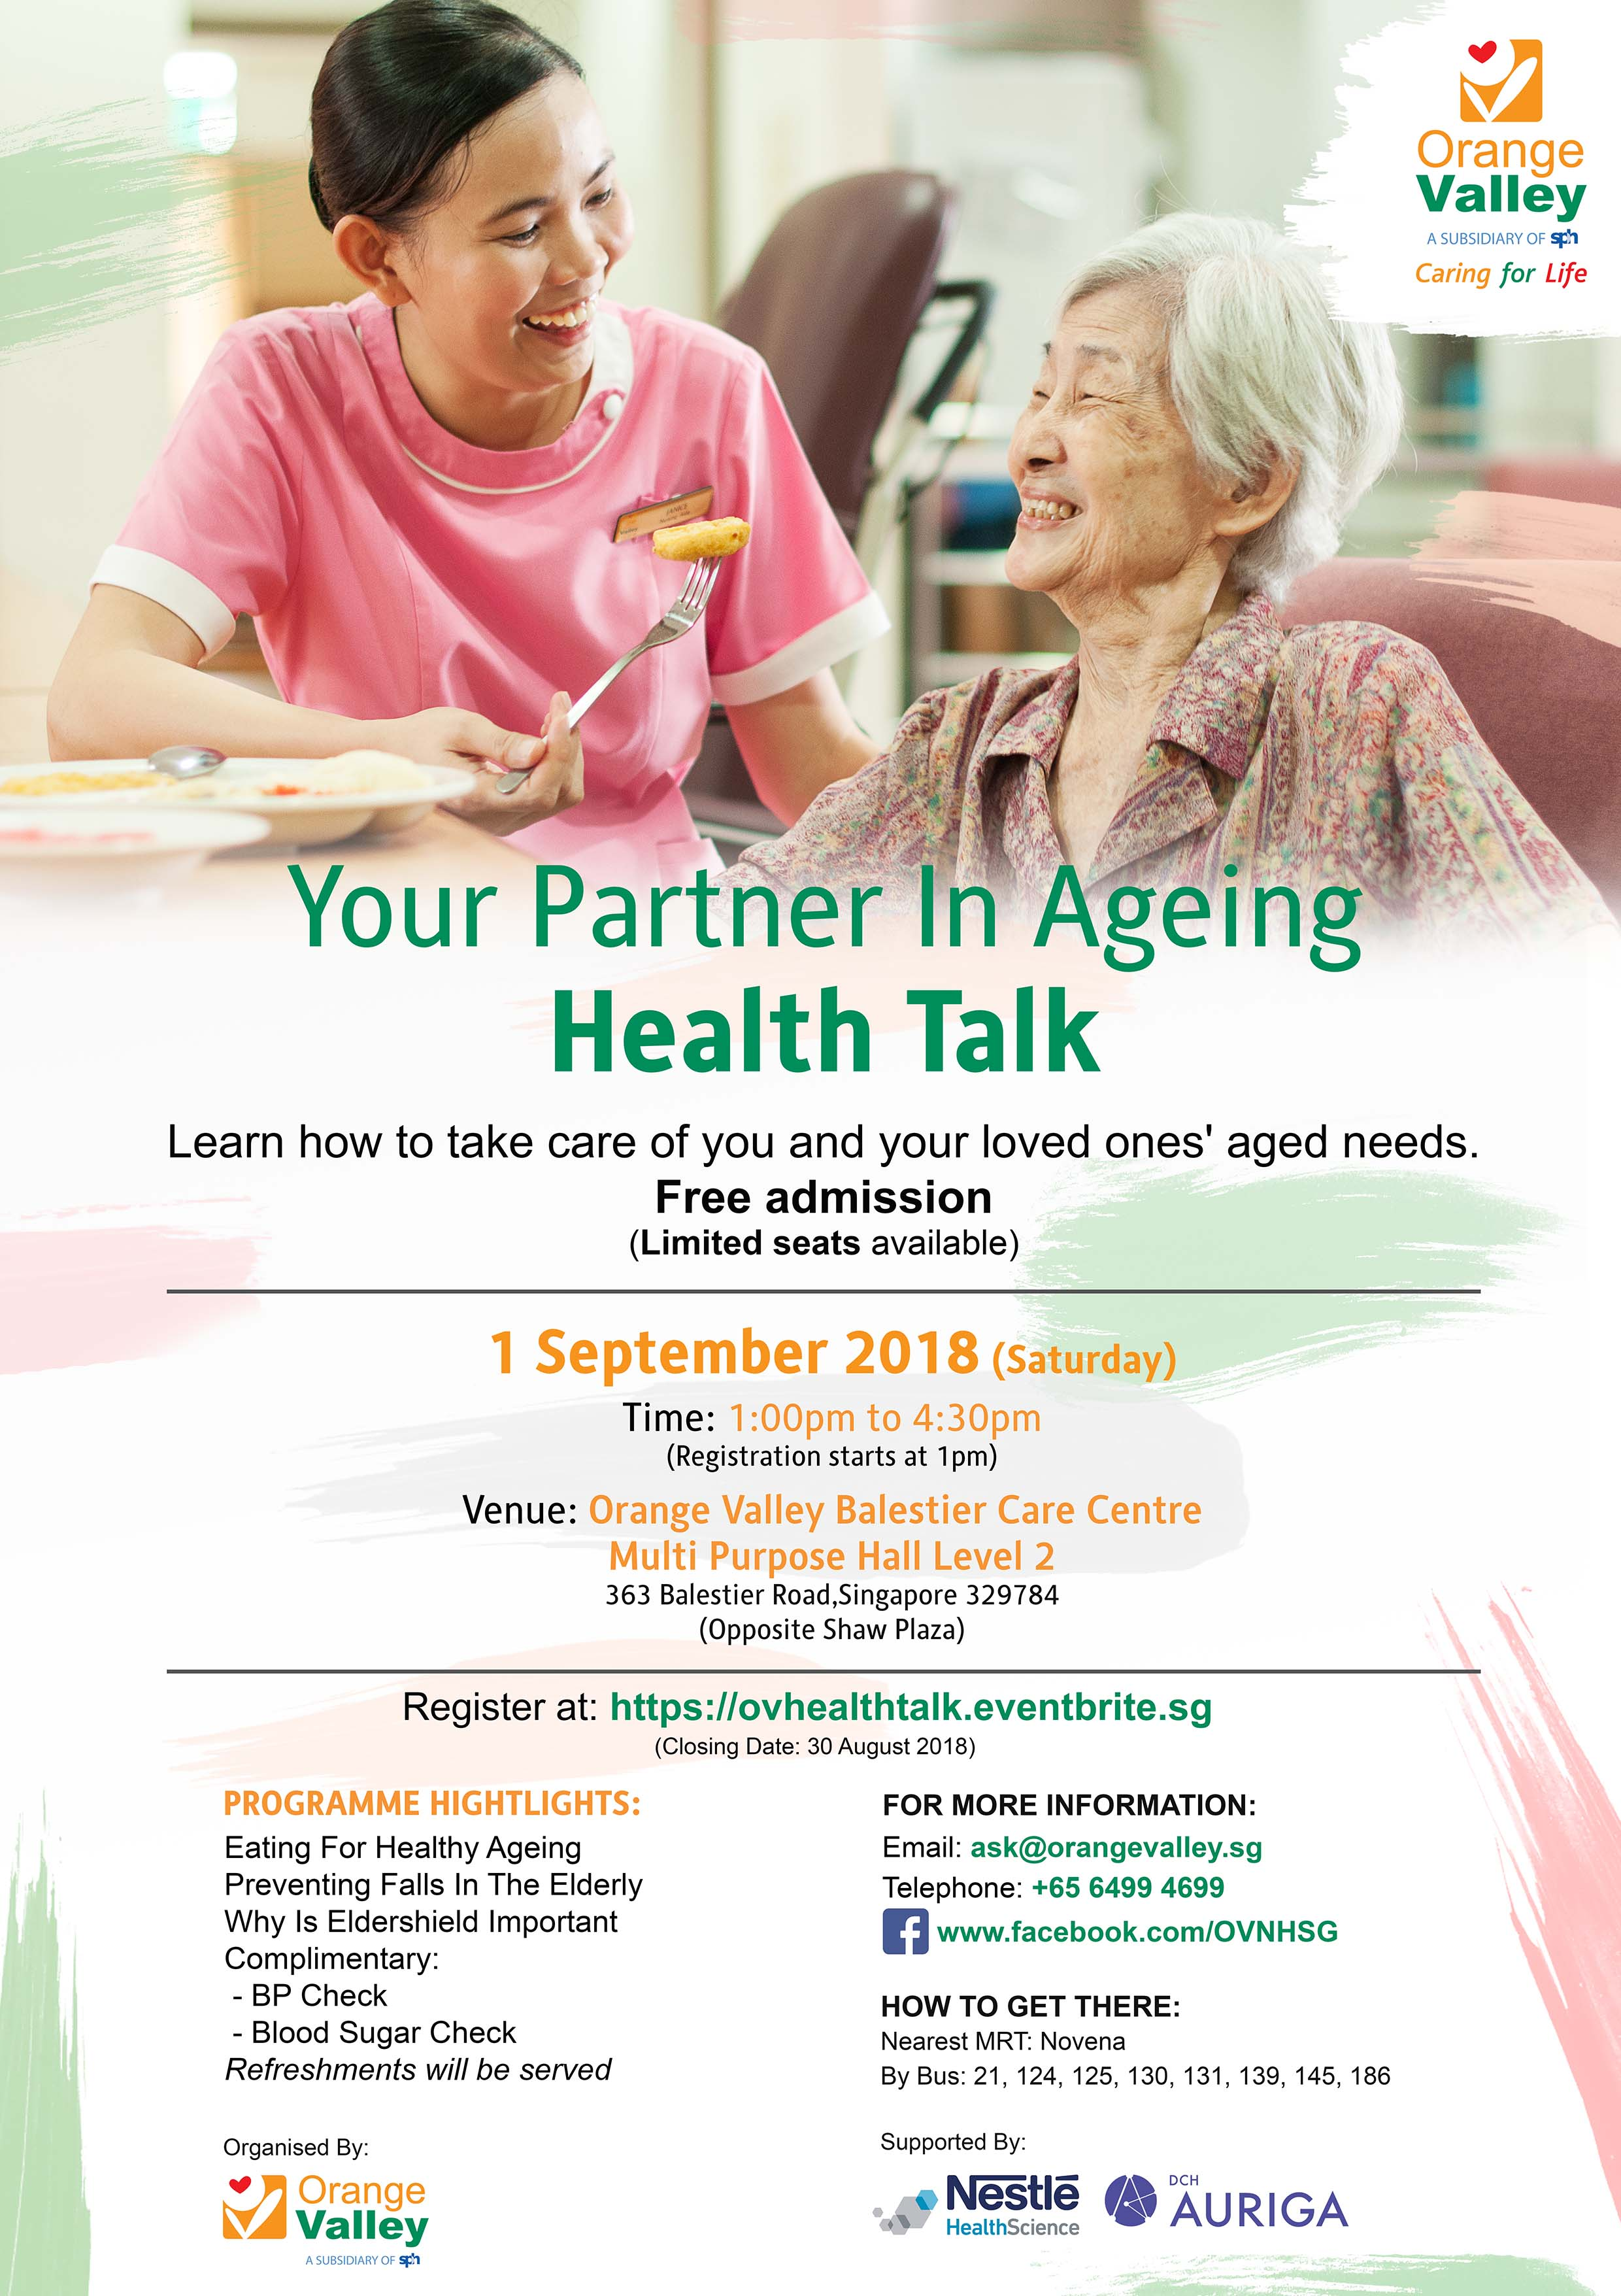 Your Partner In Ageing Health Talk